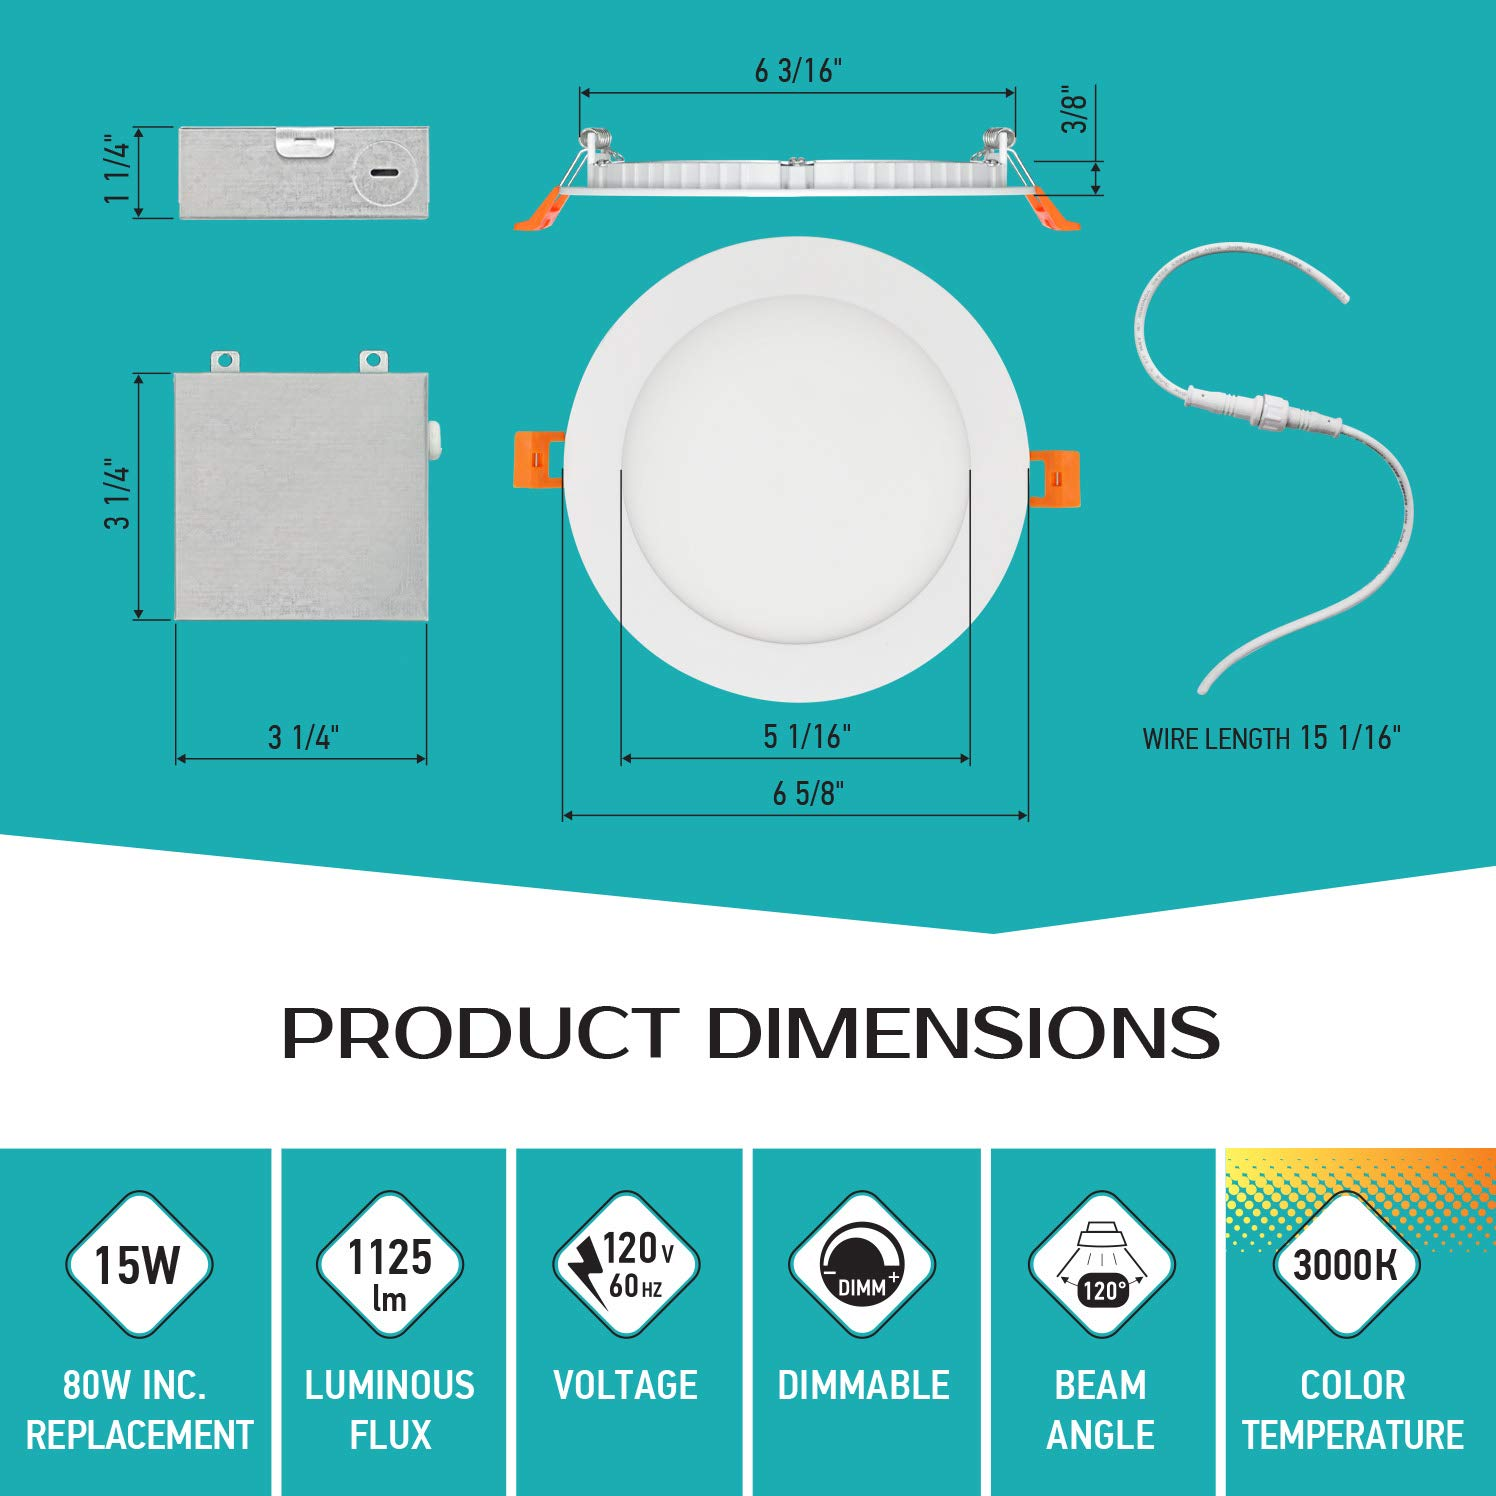 LUXTER (12 Pack) 6 inch Ultra-Thin Round LED Recessed Panel Light with Junction Box, Dimmable, IC Rated, 15W (80 Watt Repl.) 3000K Warm Light 1125 Lm. No Can Needed ETL & Energy Star Listed by Luxter (Image #4)